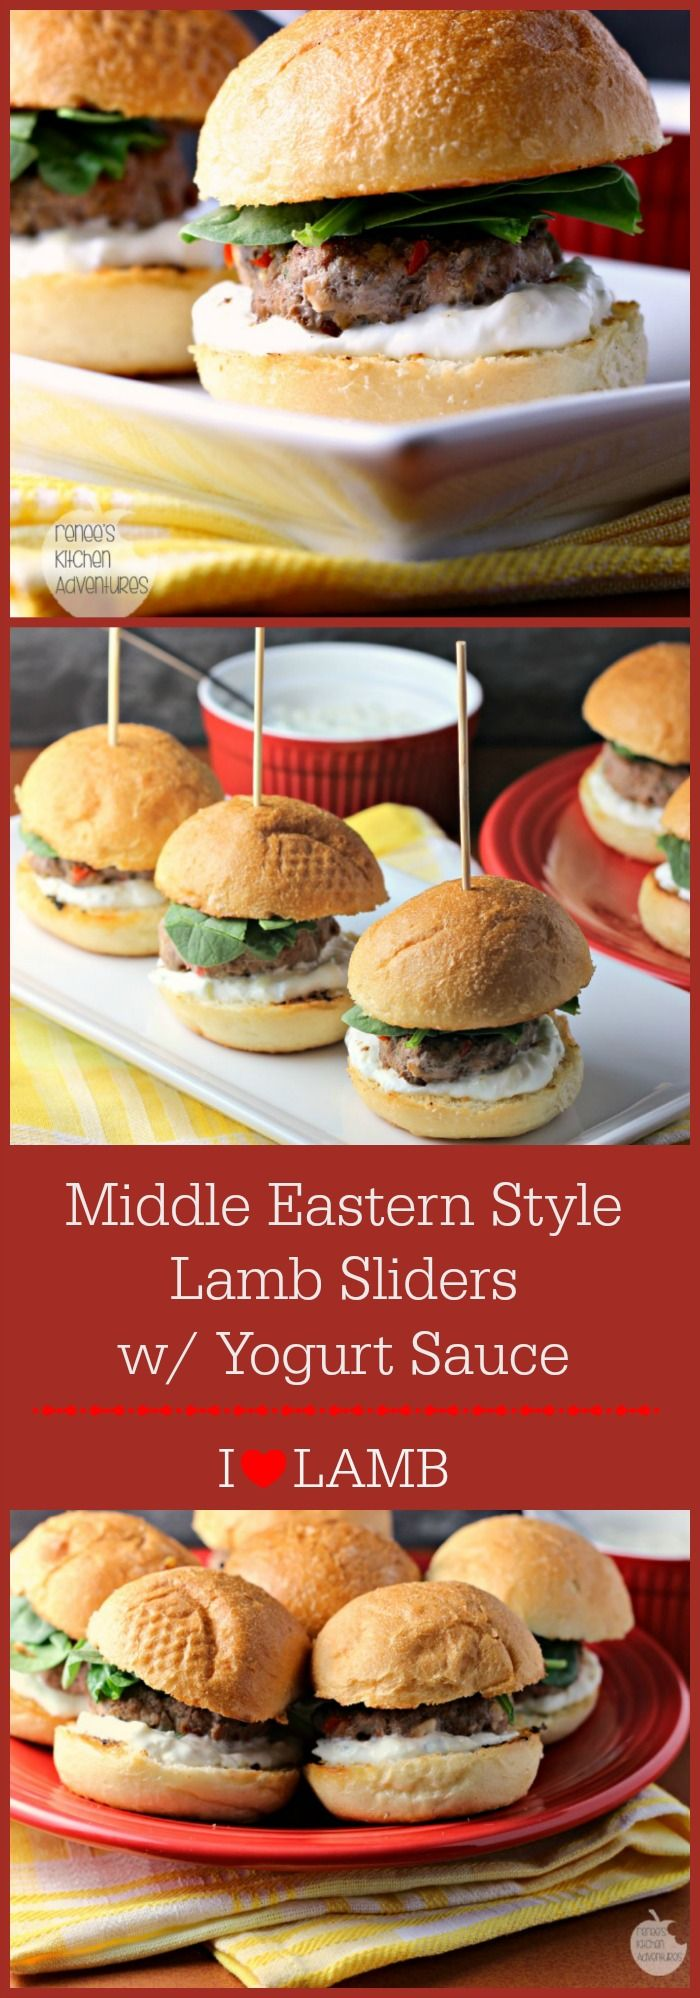 Middle Eastern Style Lamb Sliders with Yogurt Sauce is a flavor twist on a classic fun food!  Featuring American Lamb. #LocalLambGlobalFlavor #CleverGirls